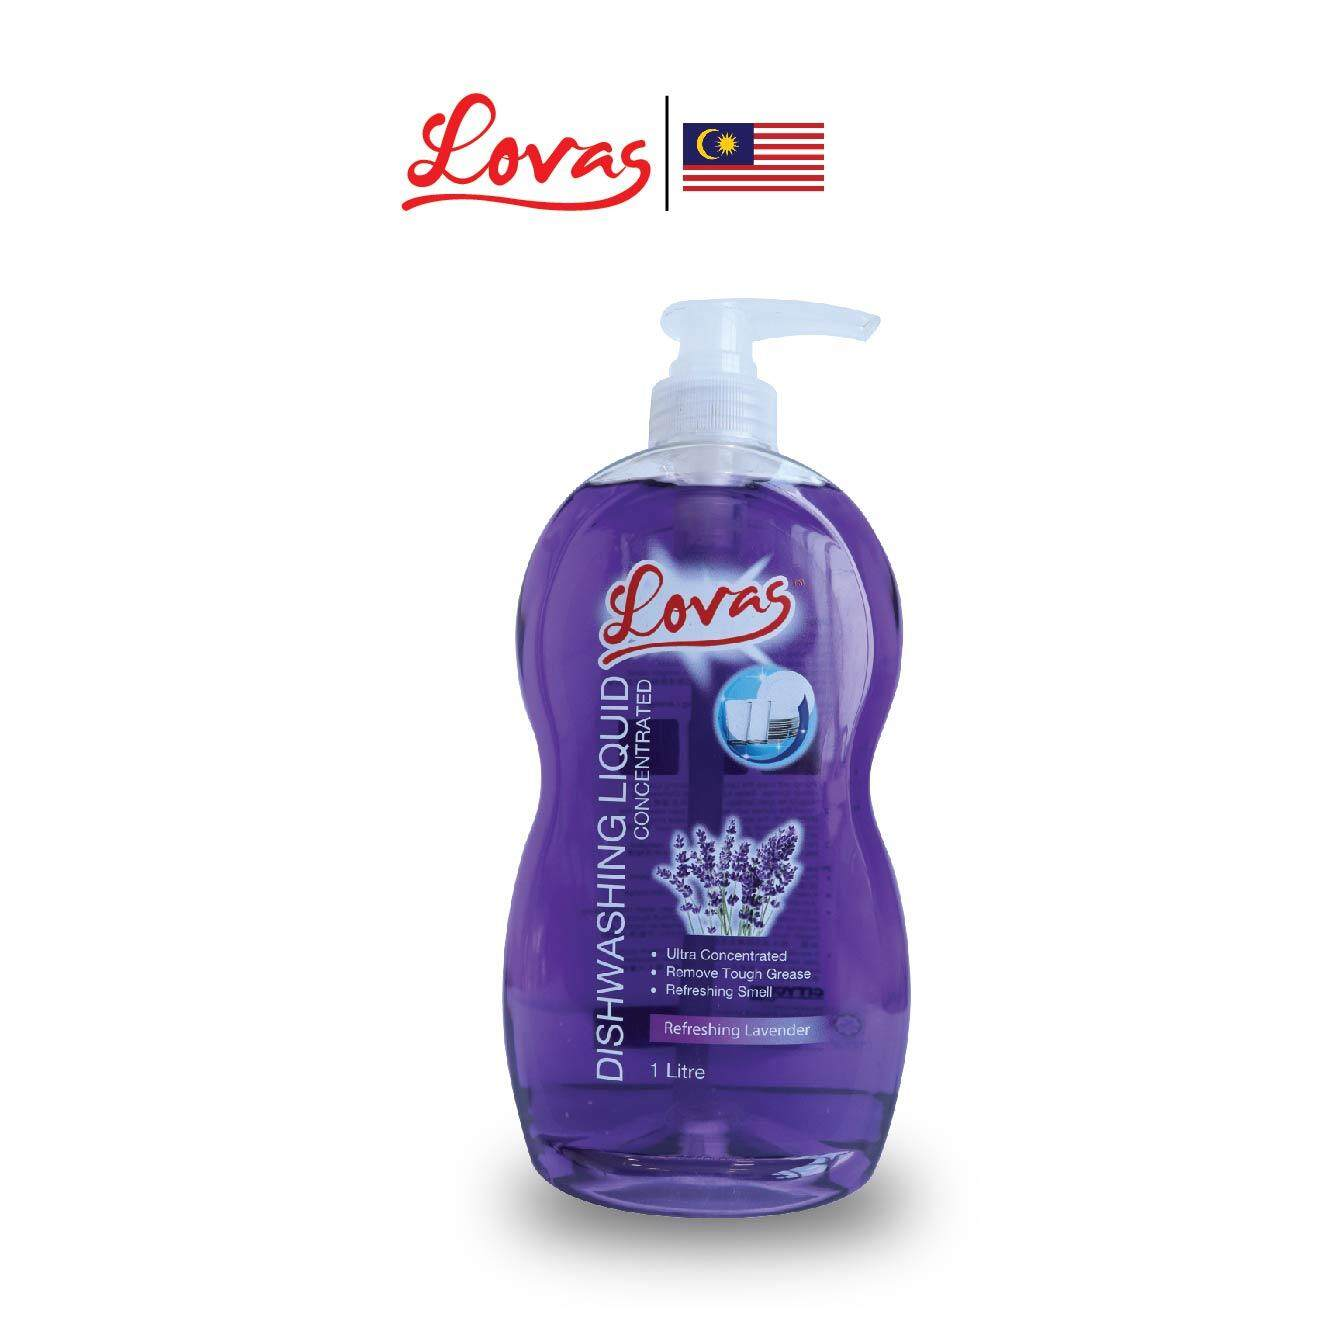 LOVAS Dishwashing Liquid Concentrated - 1L [Lavender] Oil & Grease Remover